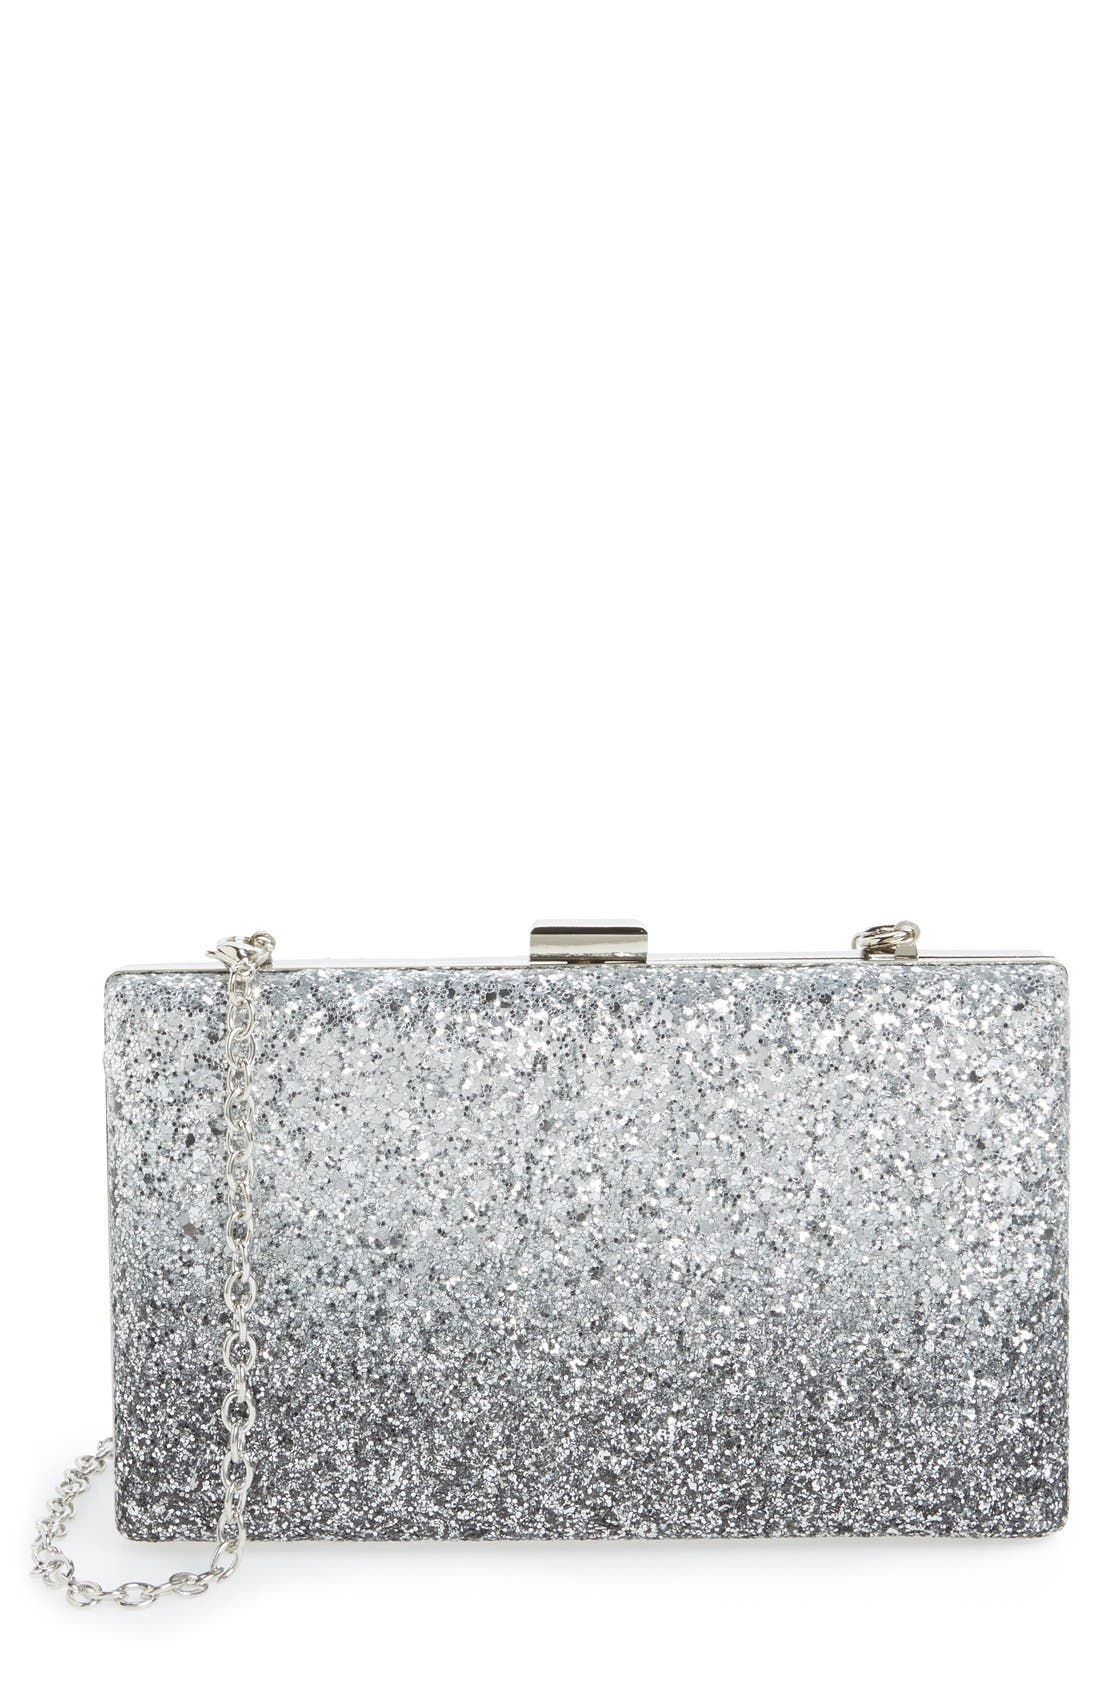 Alternate Image 1 Selected - Sondra Roberts Ombré Glitter Clutch